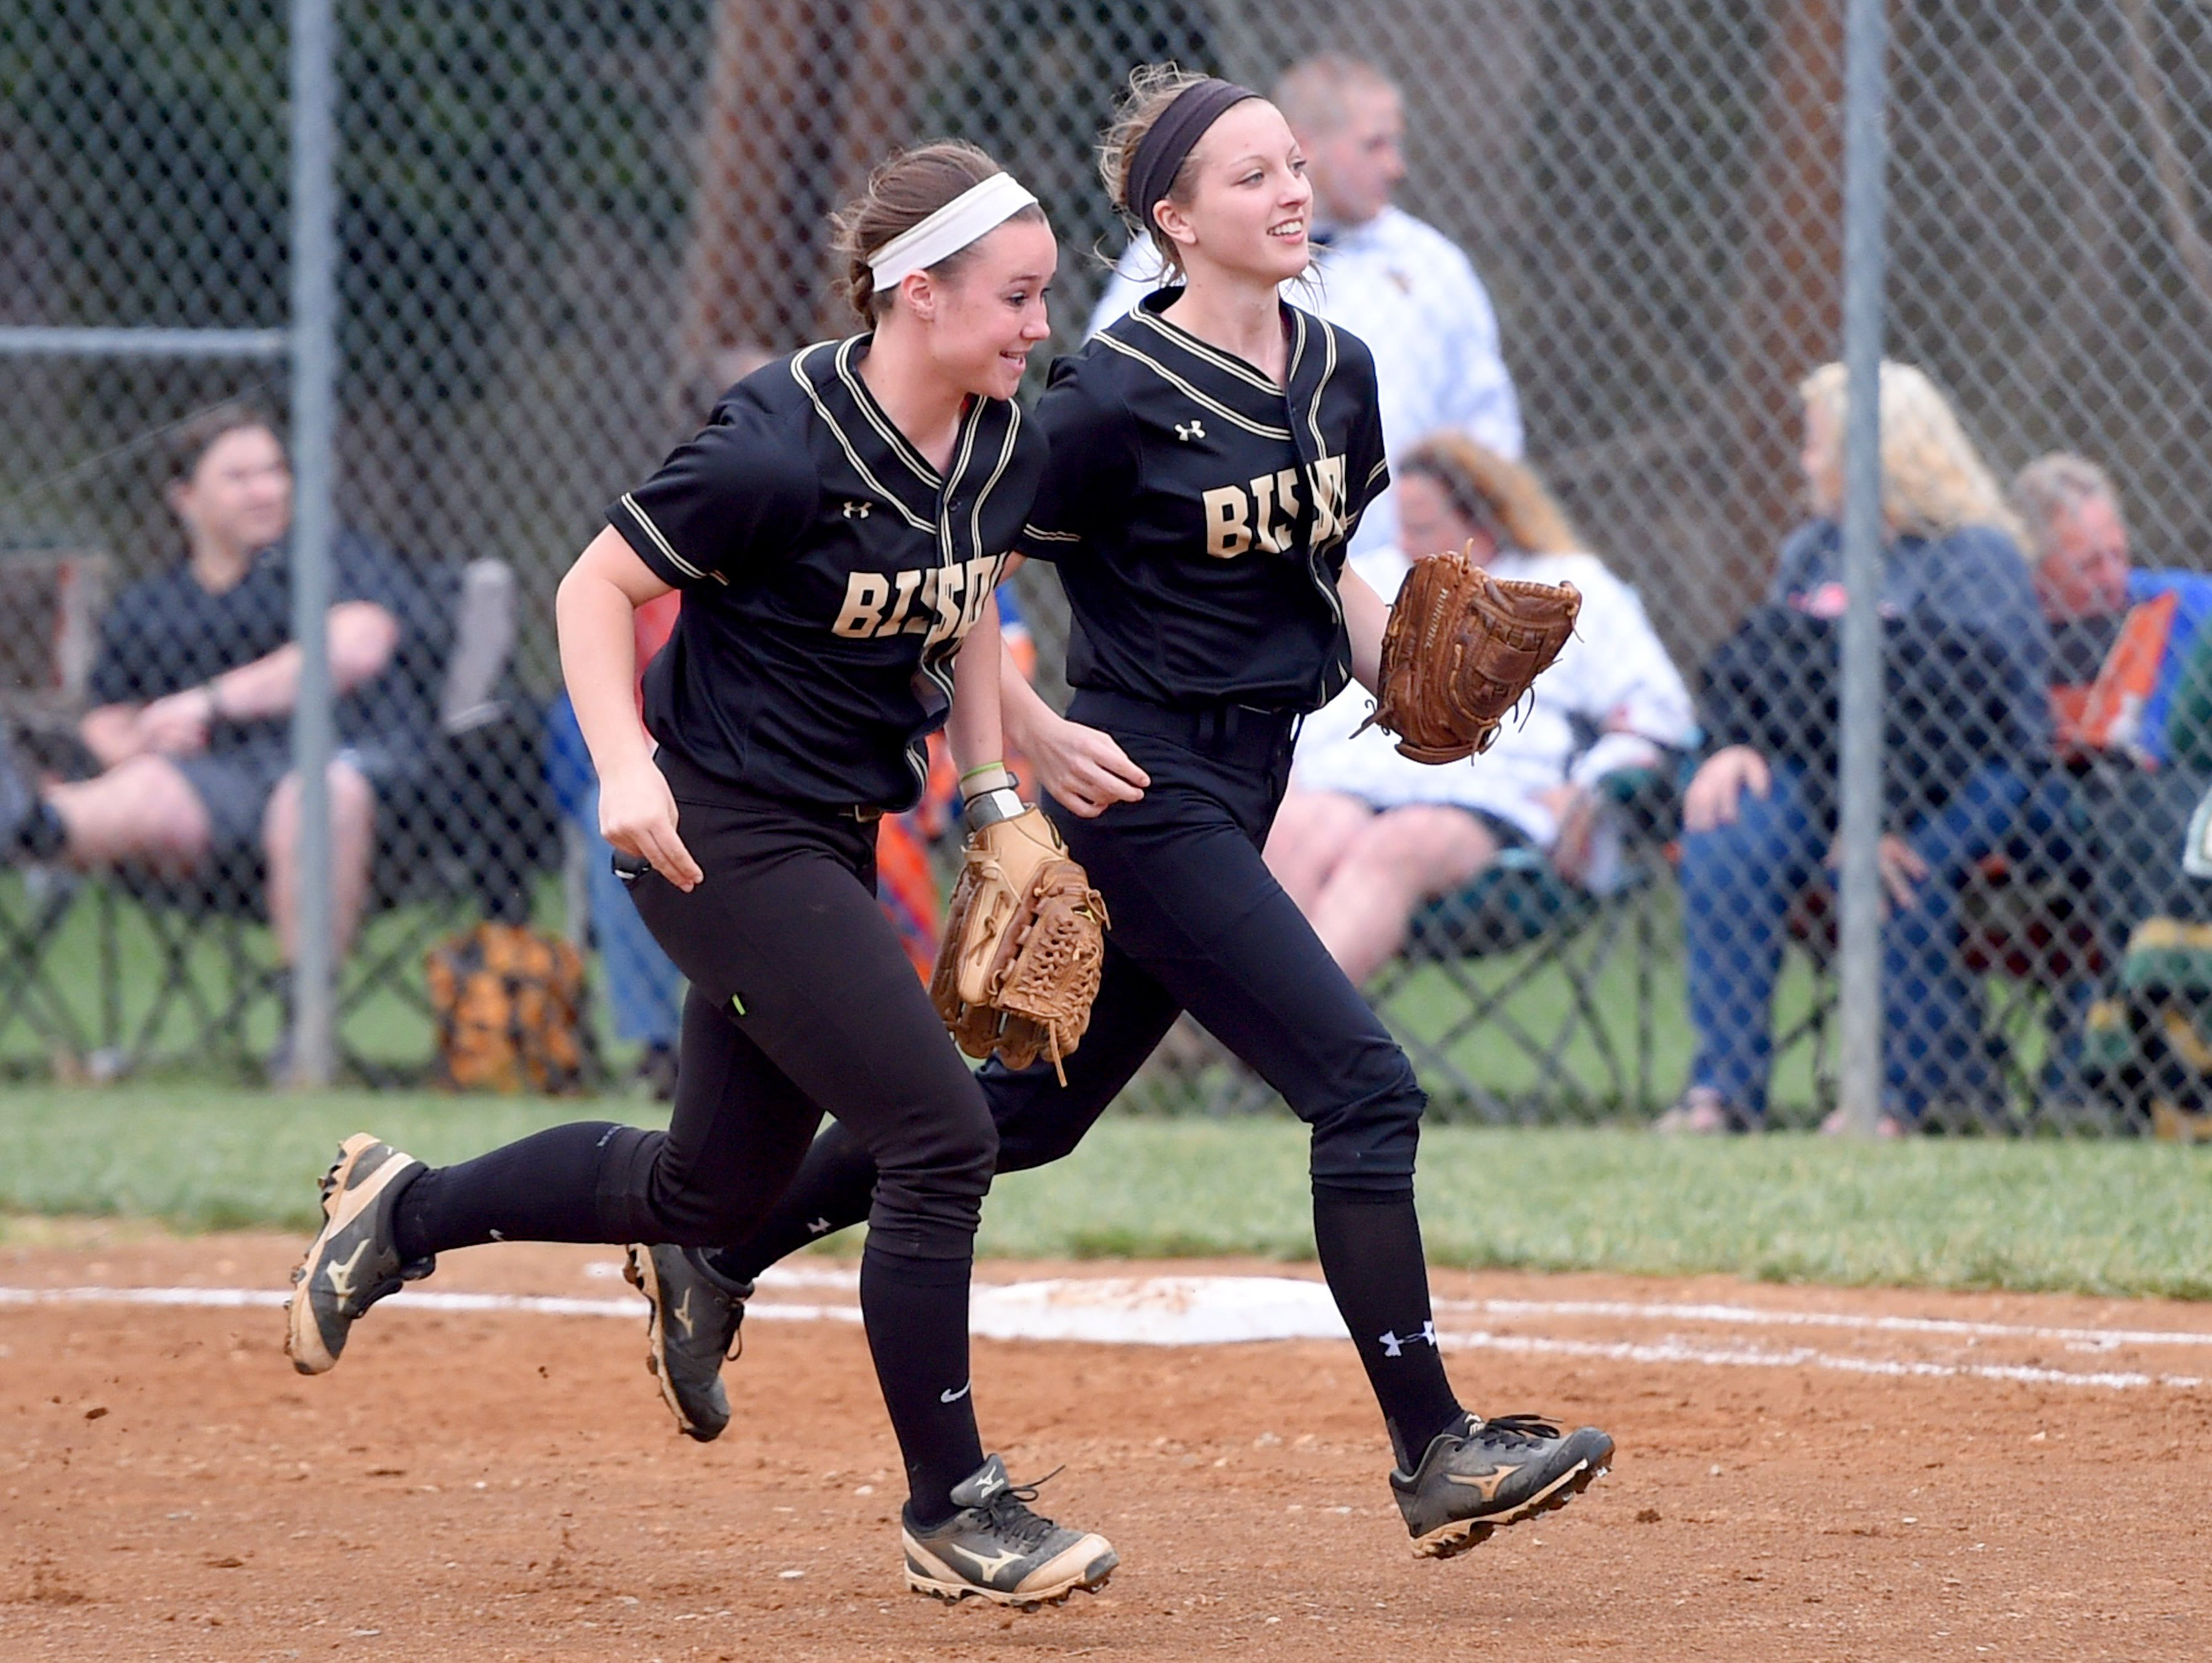 Buffalo Gap's Kieland Chandler (right) smiles as she heads to the dugout alongside teammate Amber Stokes after hustling to catch a pop-fly for the final out in the first inning during a softball game played in Fishersville on Friday, April 1, 2016.